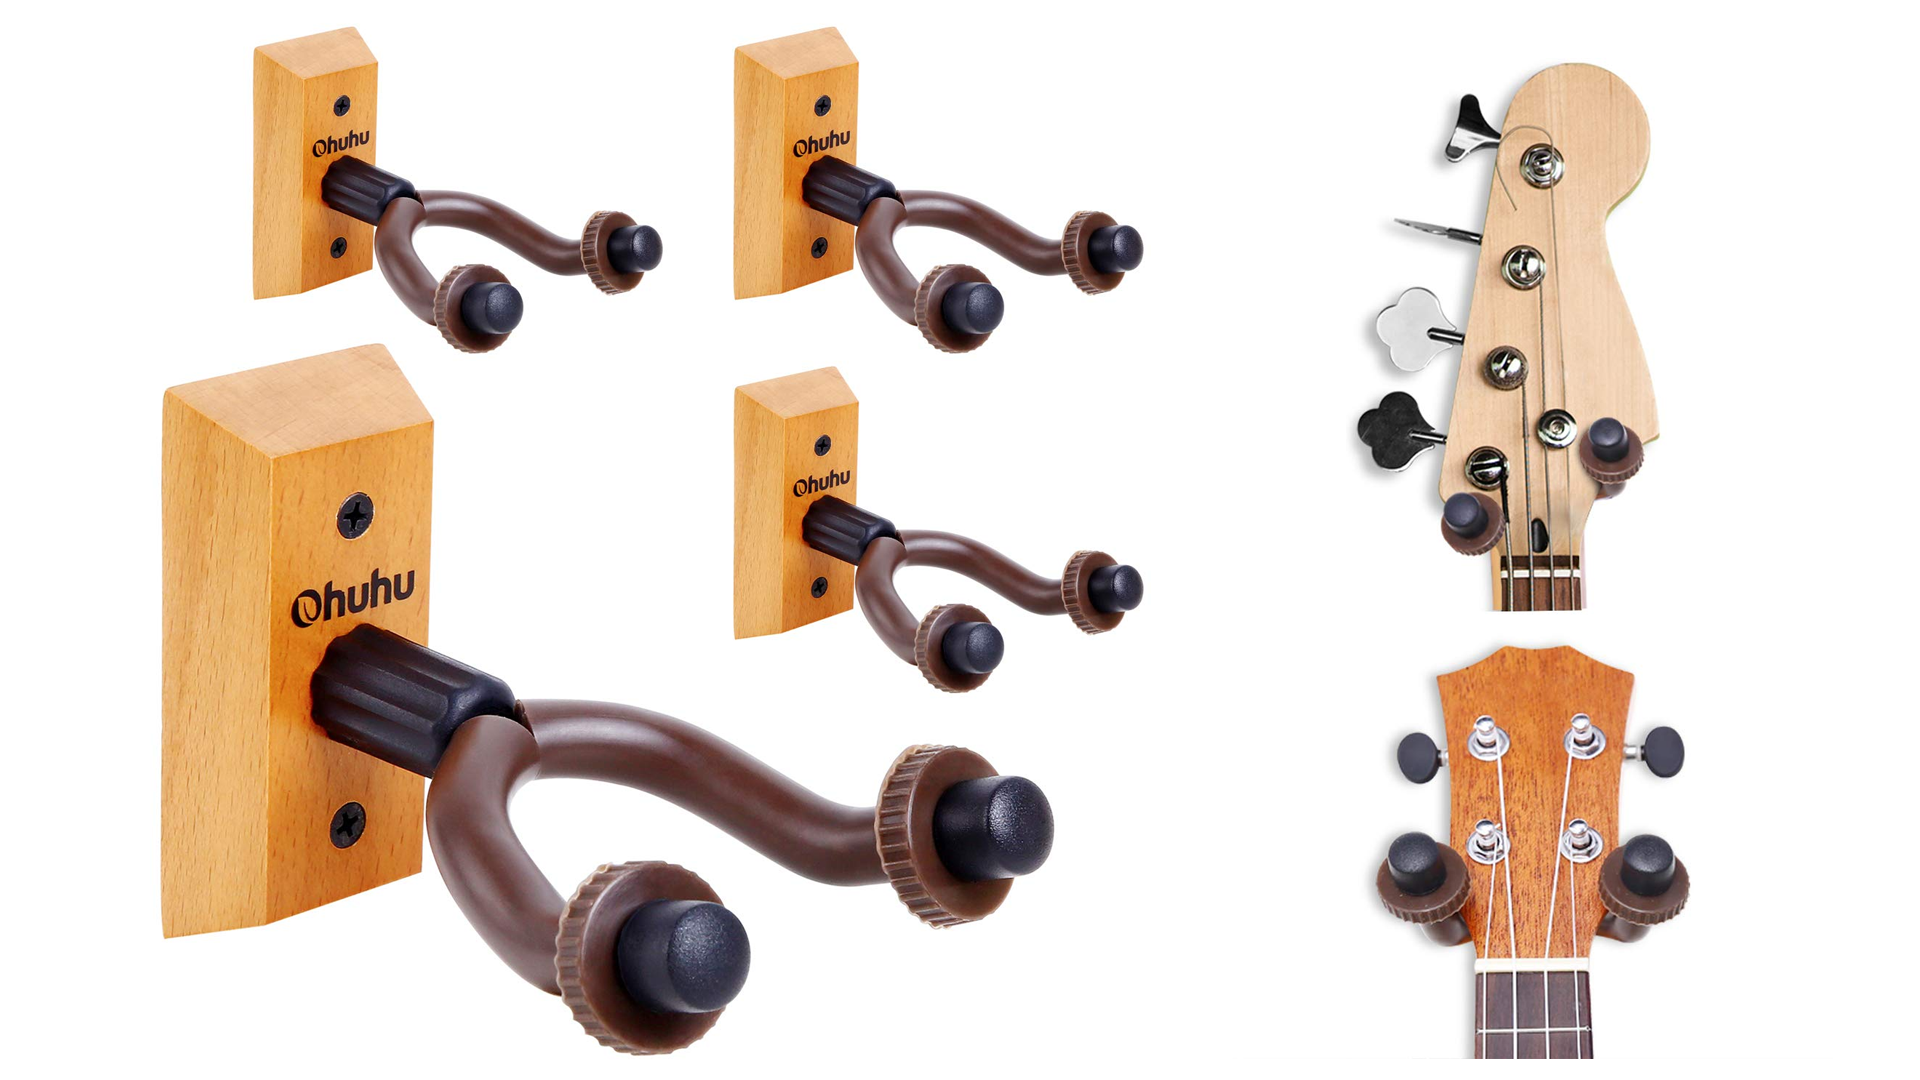 The adjustable Ohuhu wall mounts in different positions.